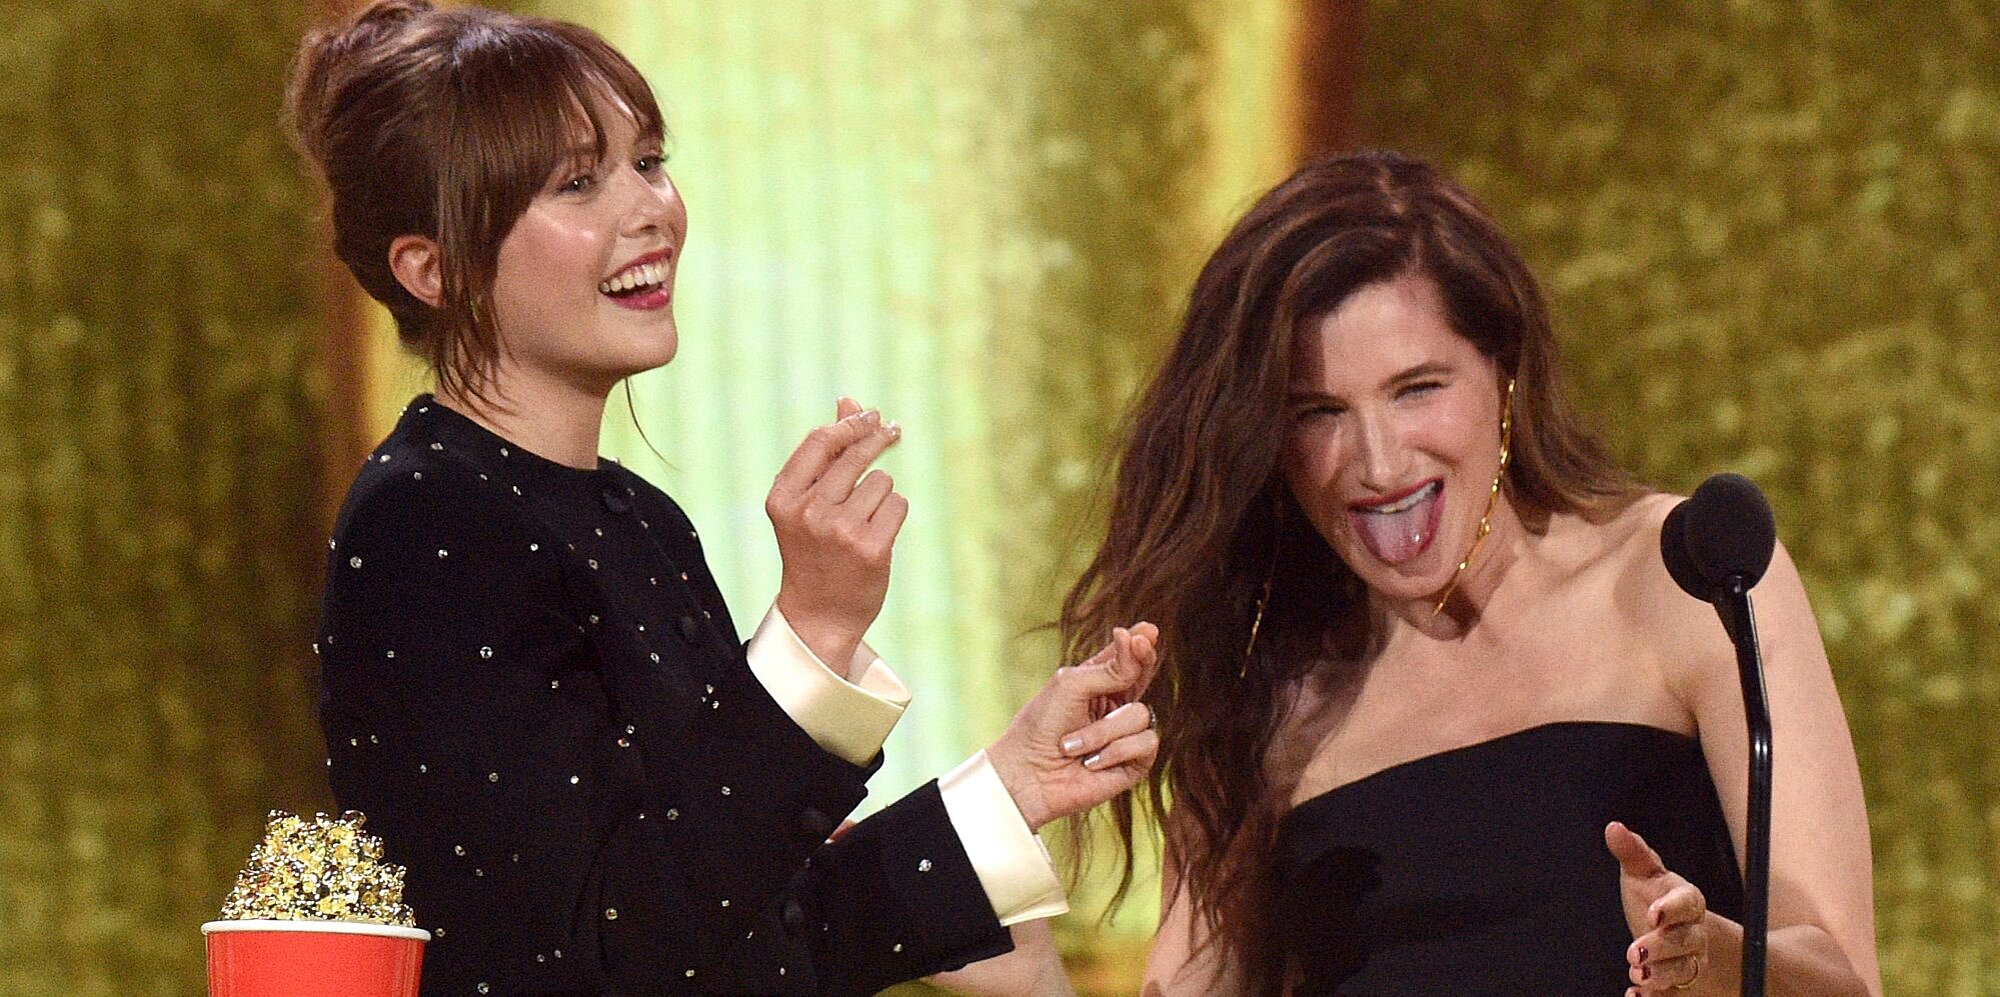 No One Had More Fun at the MTV Awards Than Elizabeth Olsen and Kathryn Hahn